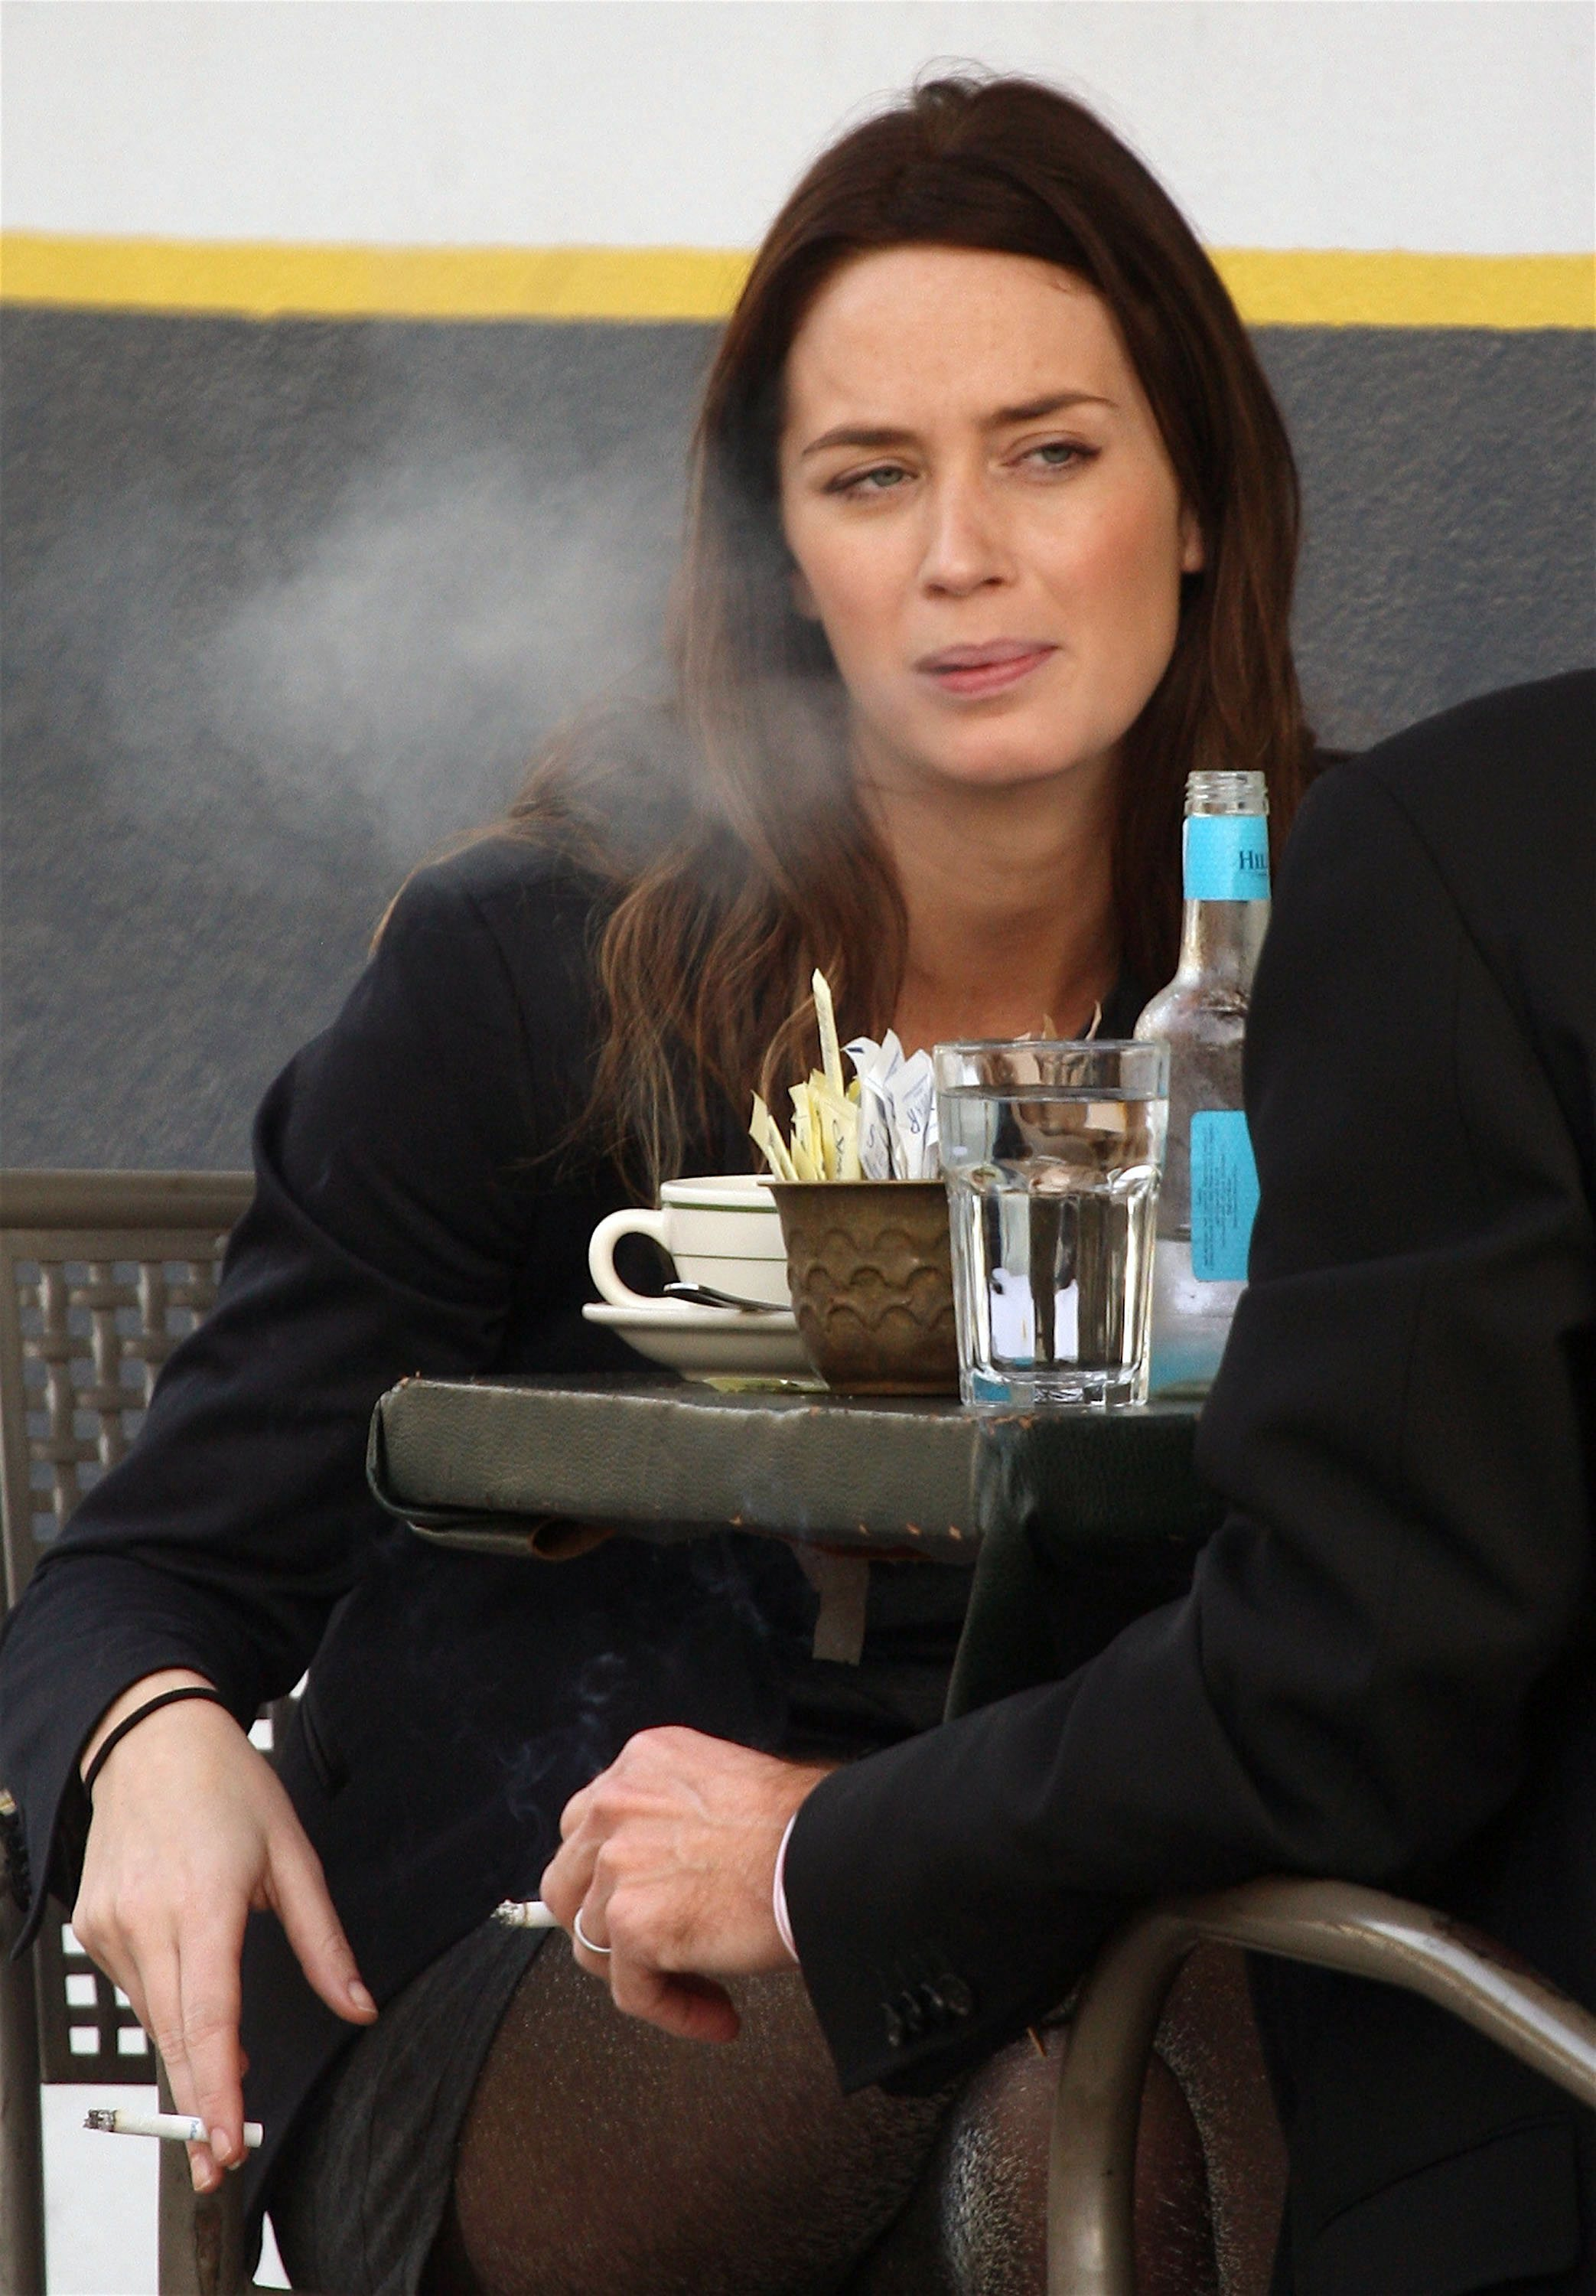 Emily Blunt enjoys coffee and cigarettes with a friend outside La Conversation cafe in West Hollywood Los Angeles, California - 08.12.08  Where: Los Angeles, California, United States When: 08 Dec 2008 Credit: WENN/Apega/Agent47